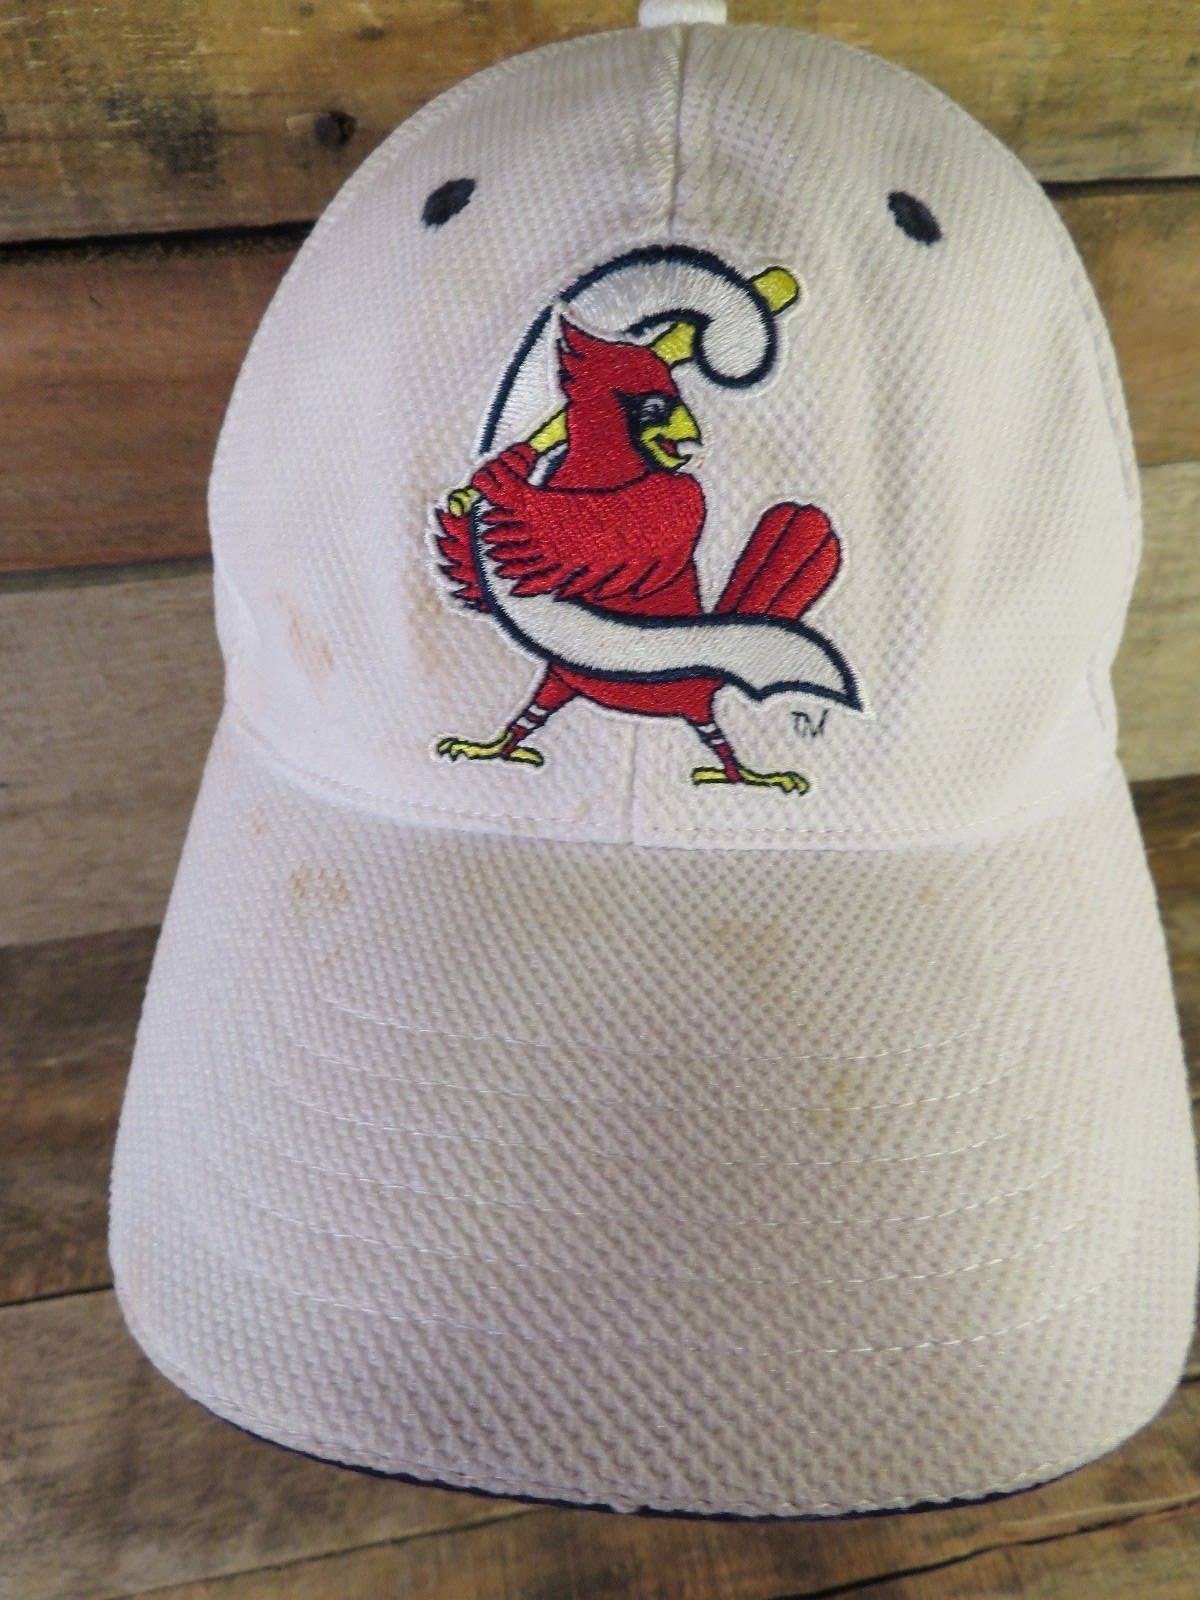 CARDINALS Downstream Casino Resort Fitted Size S/M Adult Hat Cap - $8.90